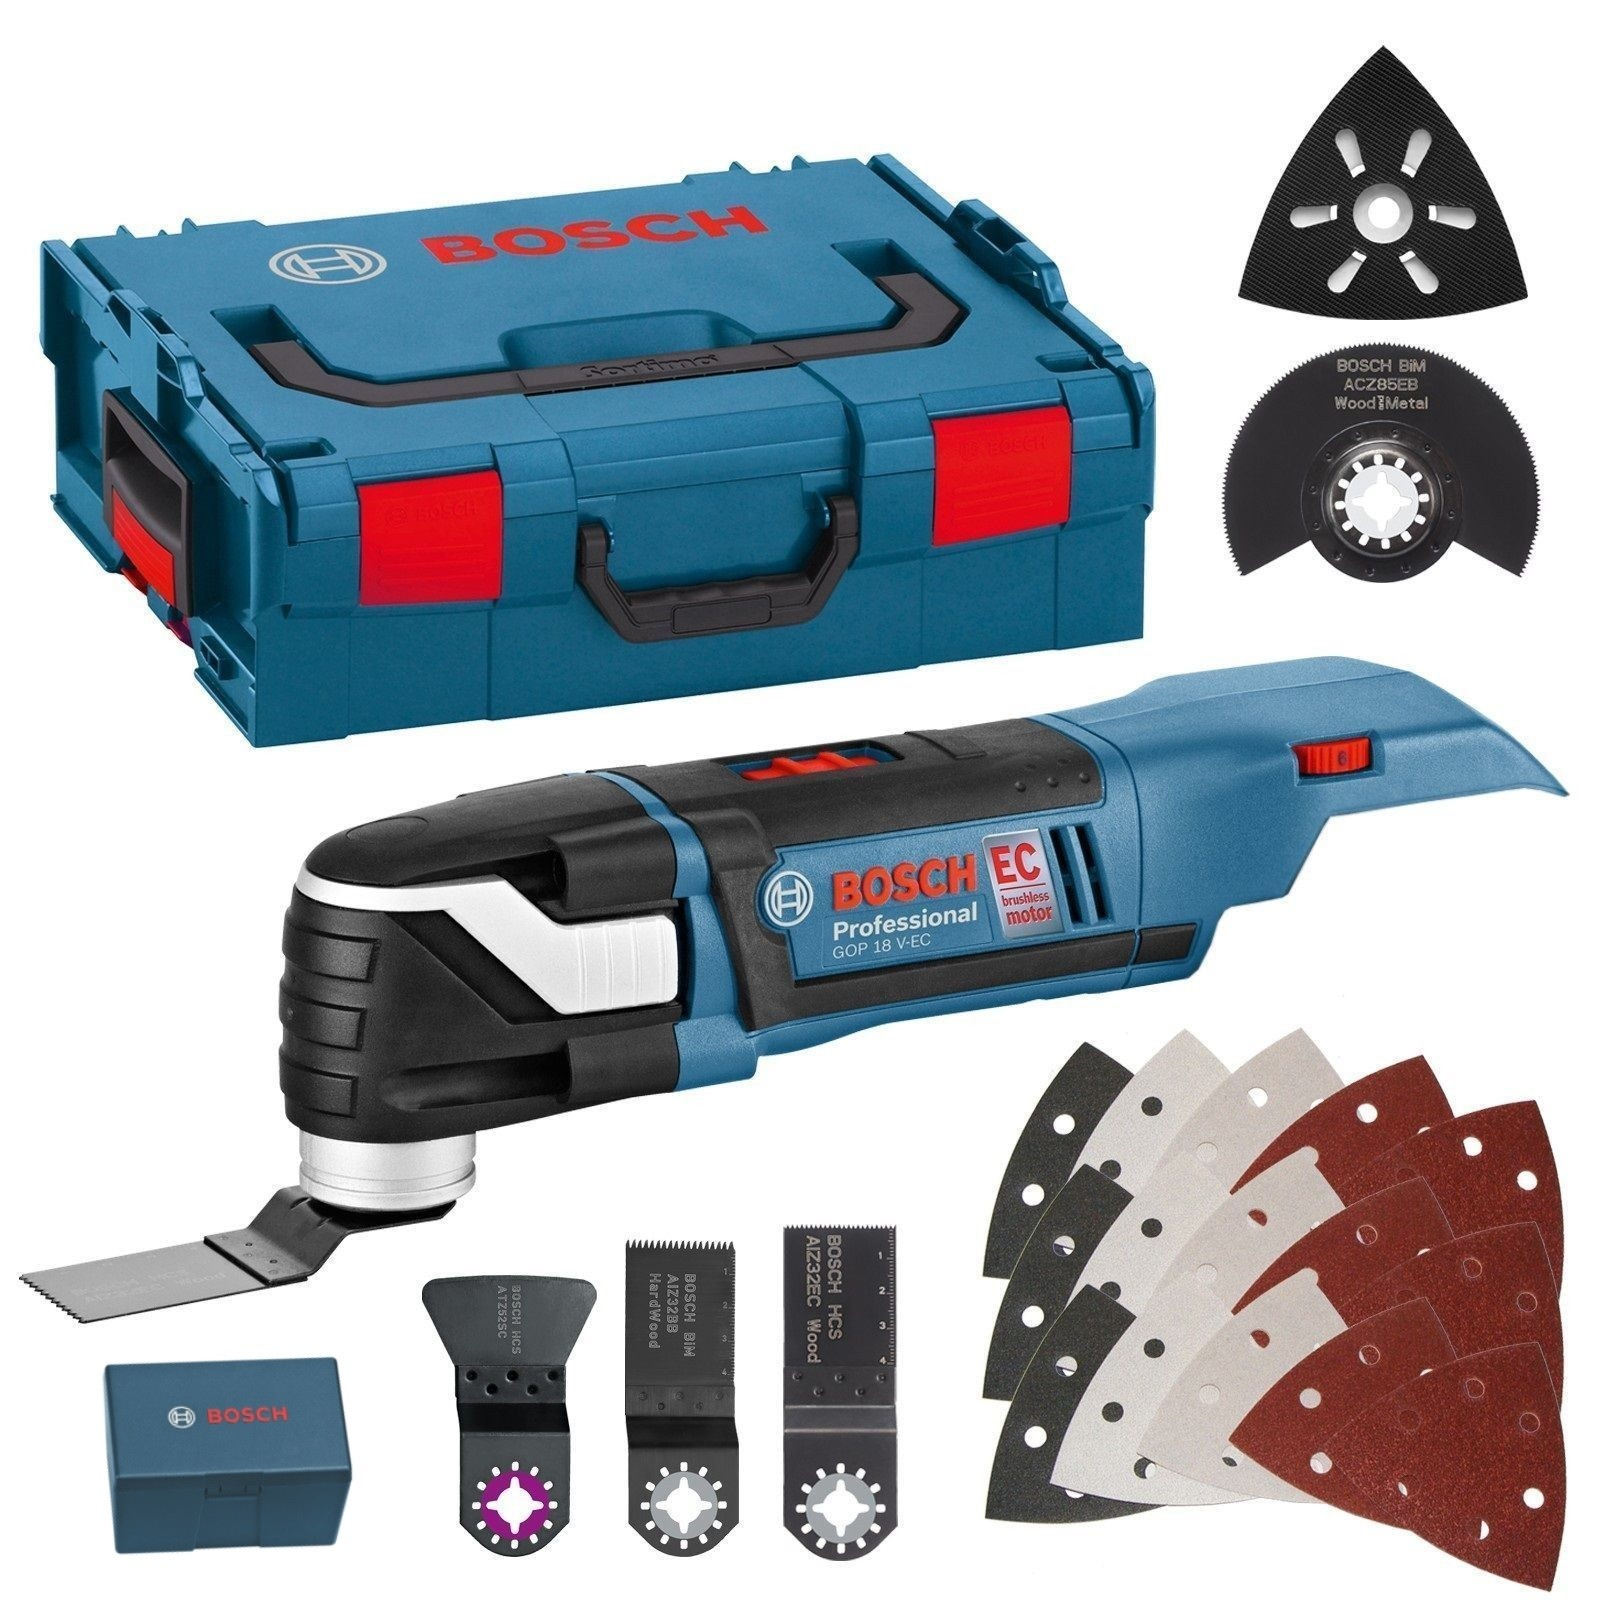 Bosch GOP 18 V-EC Brushless Multi-Cutter with 20 Accessories Body Only in L-Boxx